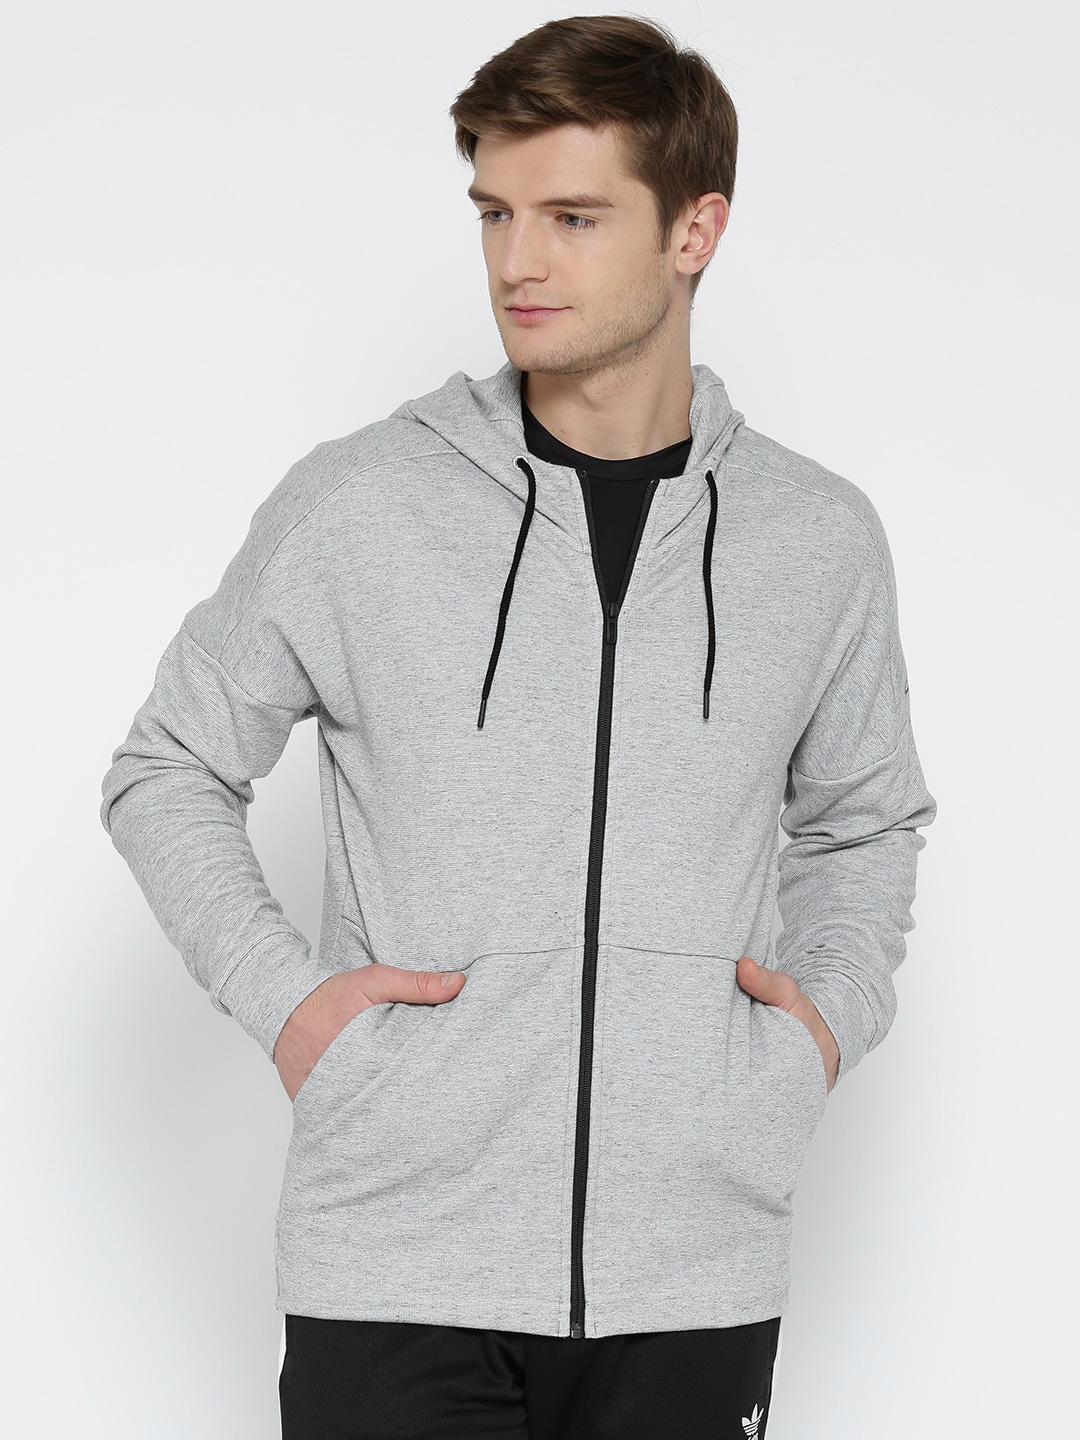 Buy Adidas ID STADIUM FZ Grey Melange Solid Hooded Men's Sweatshirt At Best Price